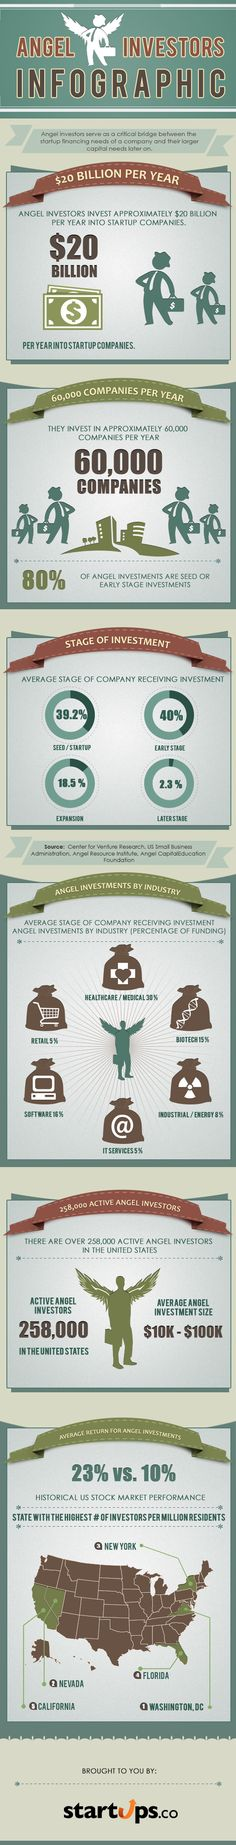 ENTREPRENEURSHIP  Angel investors put $20B a year into #startups (infographic) via VentureBeat